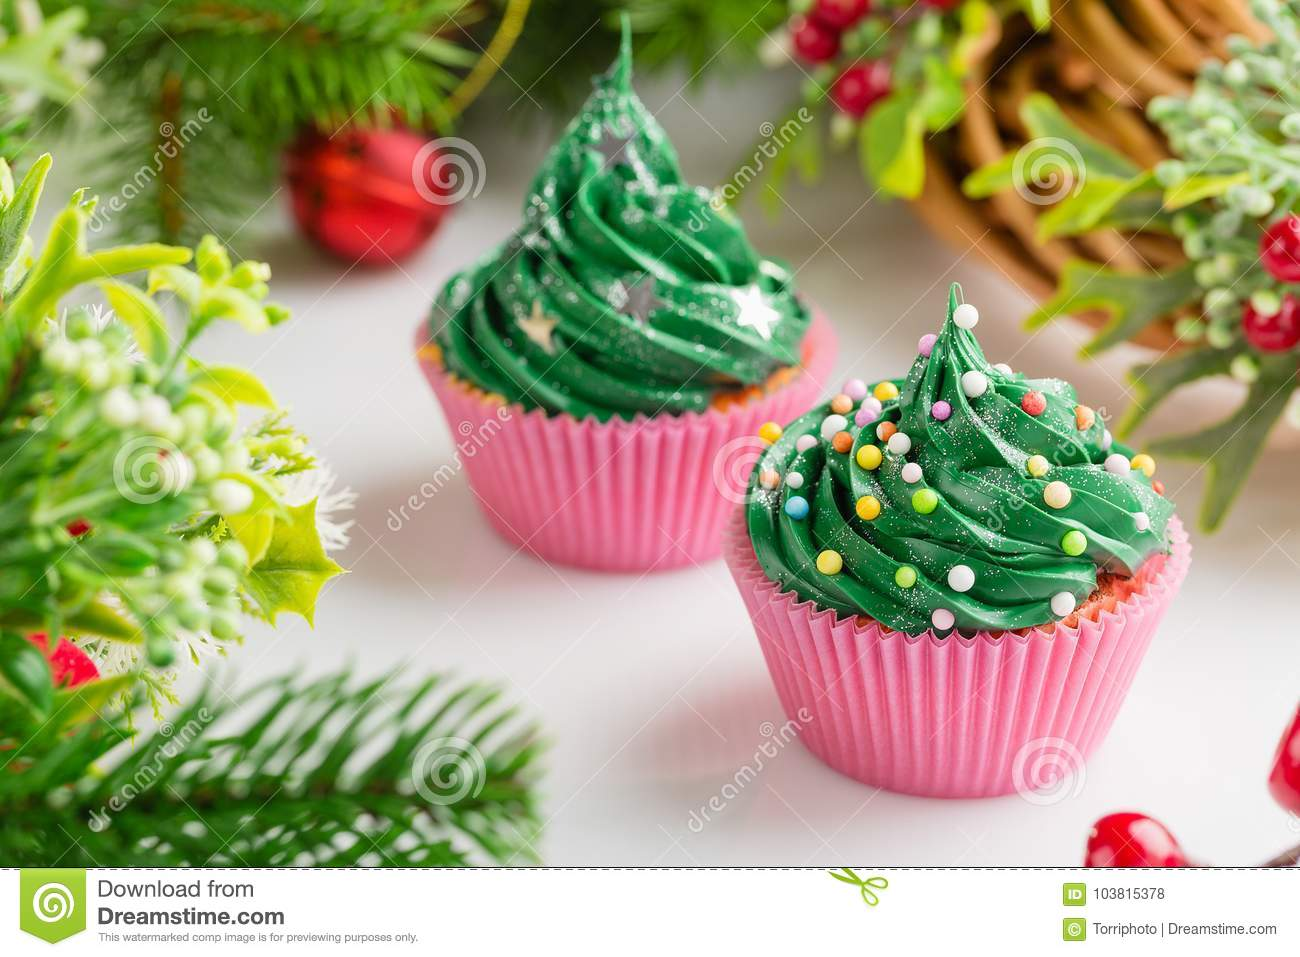 Christmas green cupcakes with festive decorations